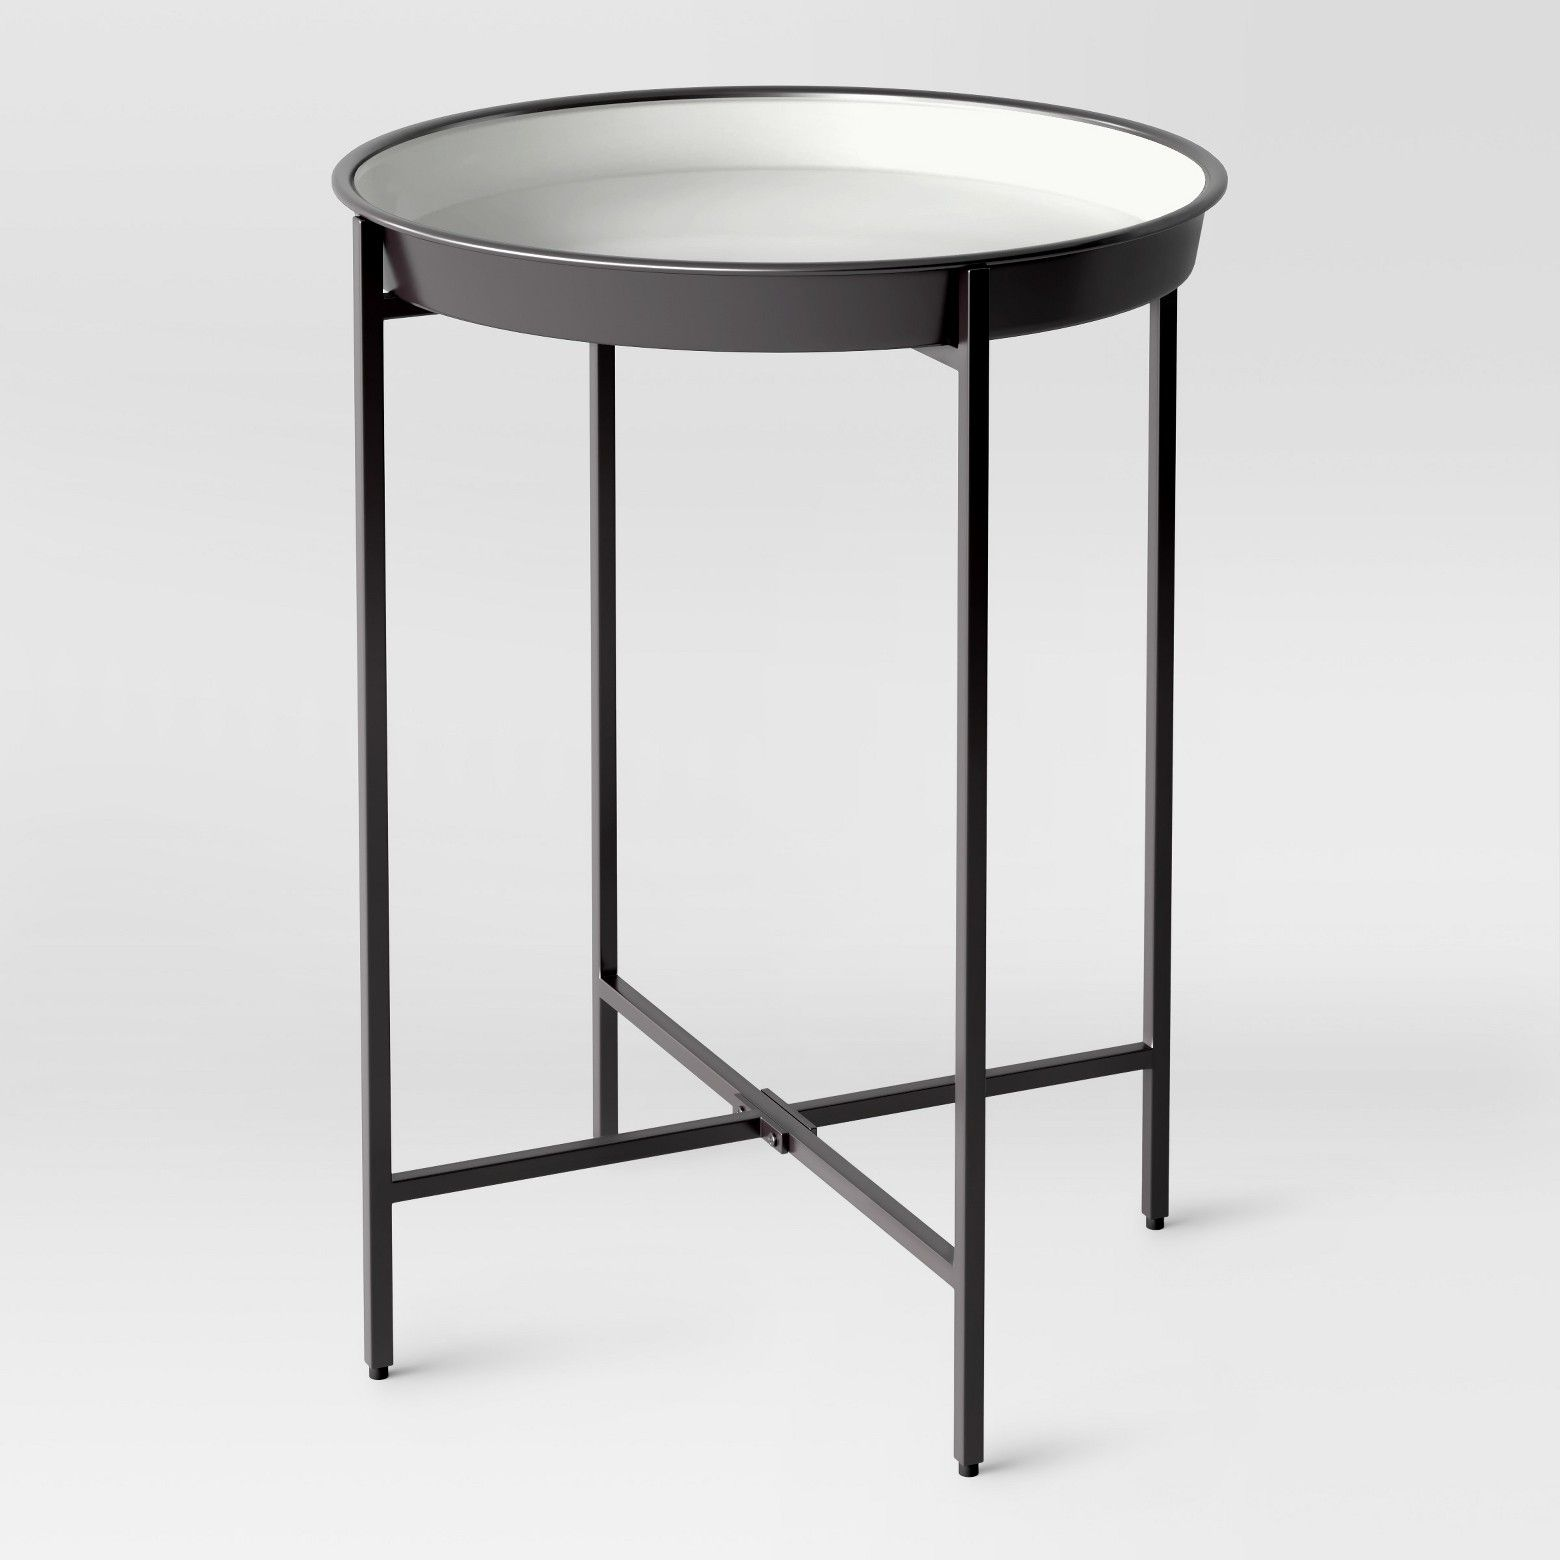 for some modern style that sure get noticed the tray black accent table project from this round features like top grill dome deck furniture west elm dining room lighting area rugs